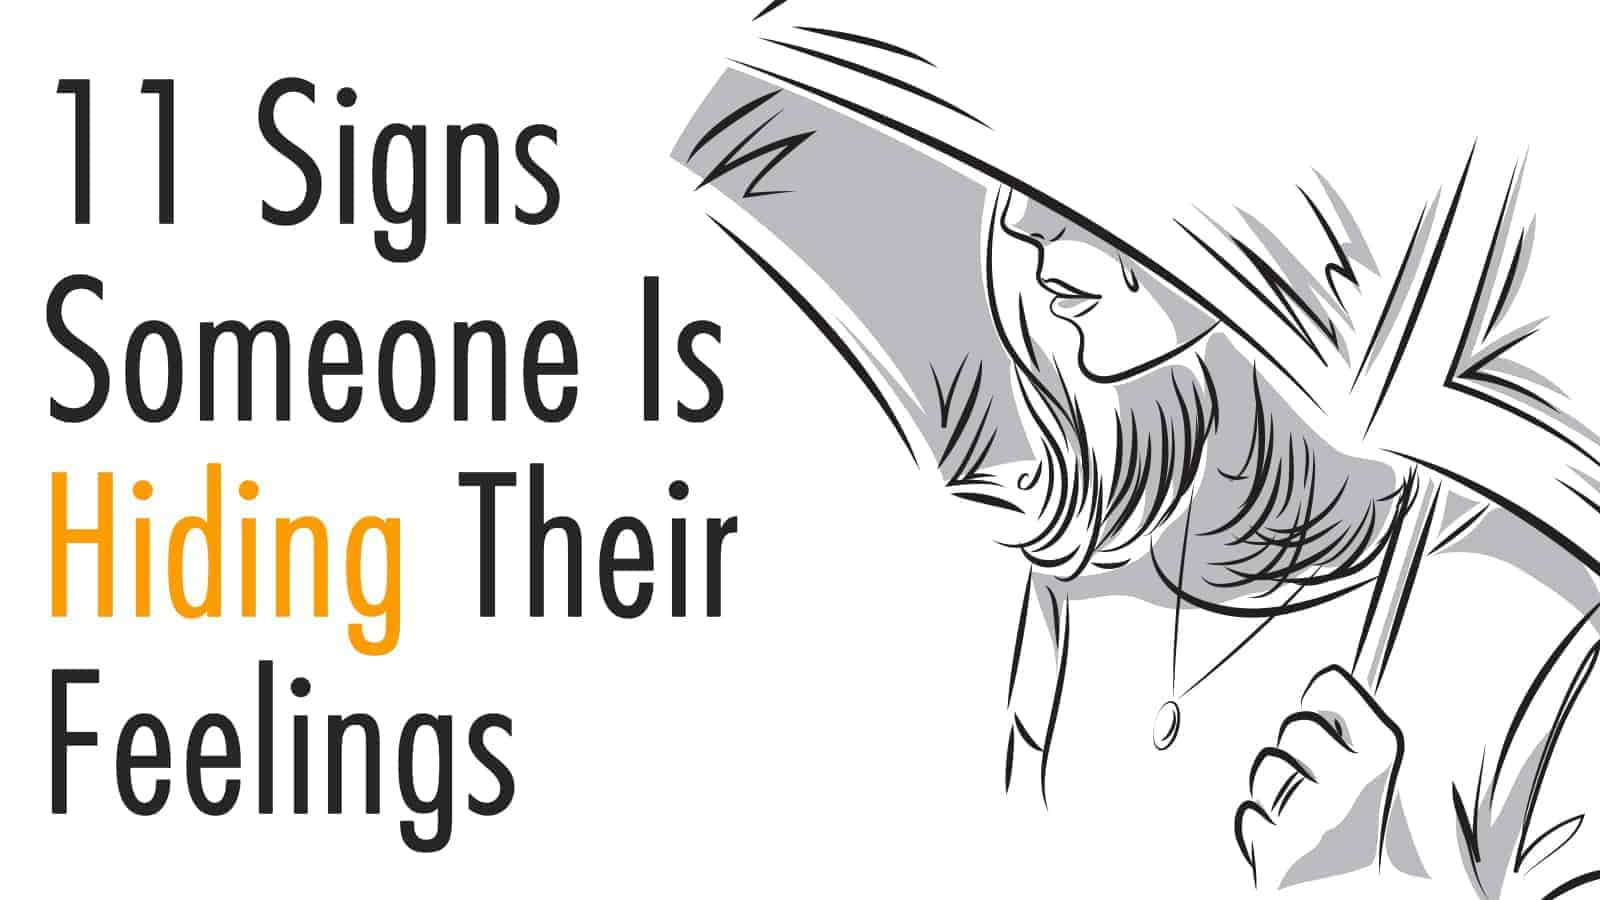 11 Signs Someone Is Hiding Their Feelings